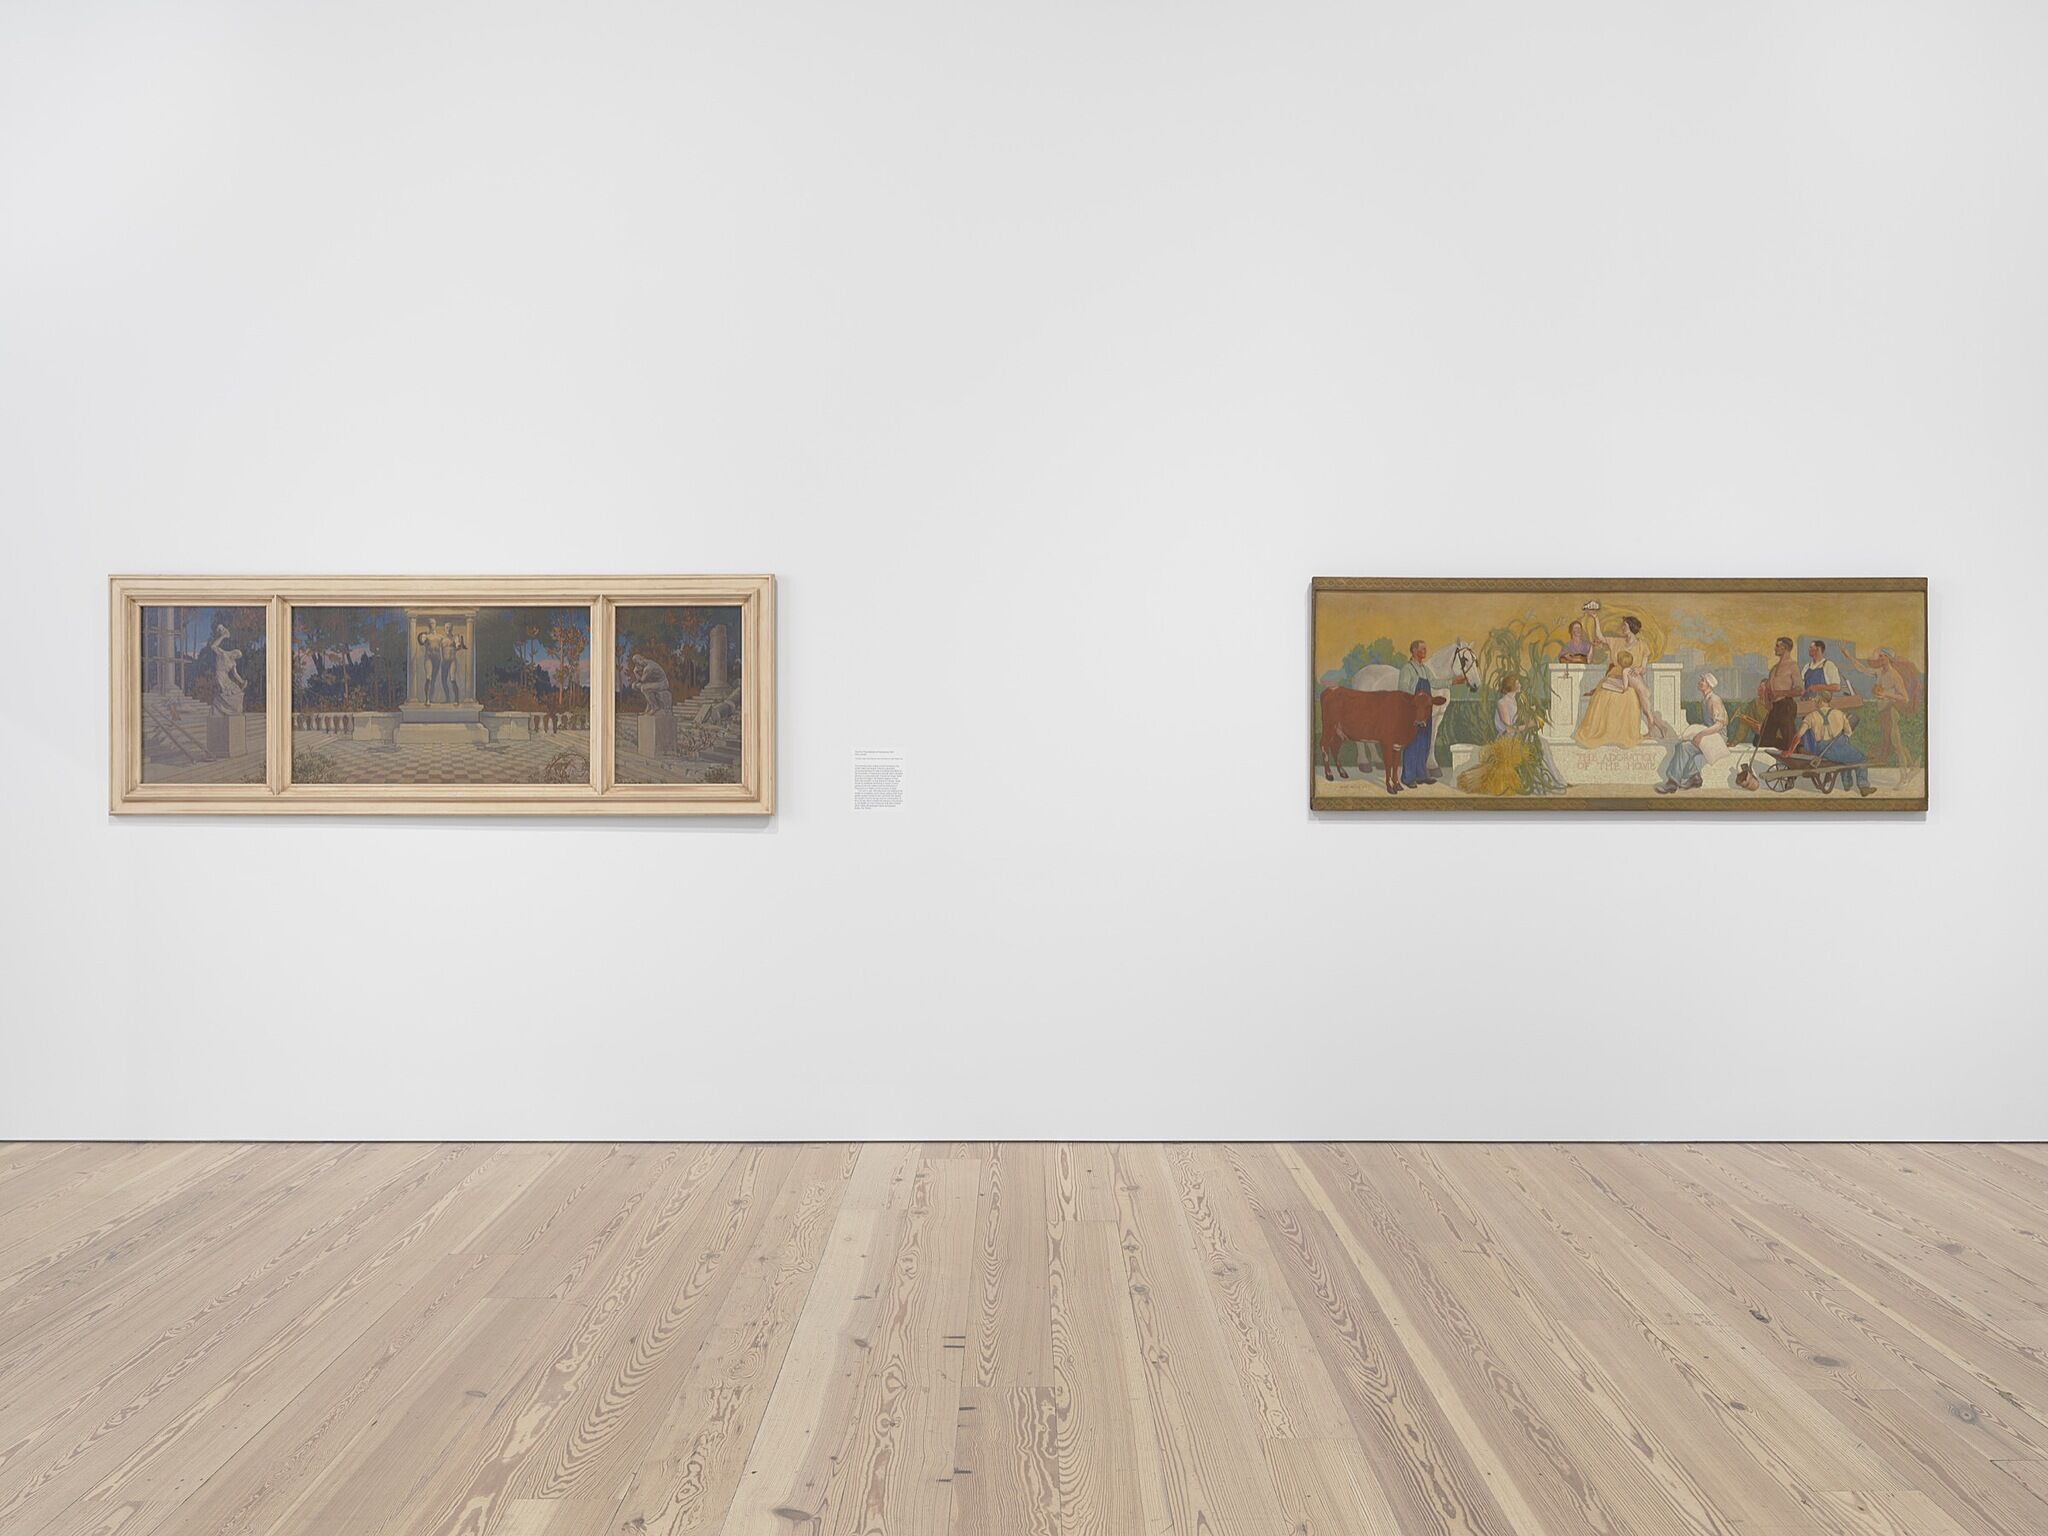 Two paintings on a gallery wall.